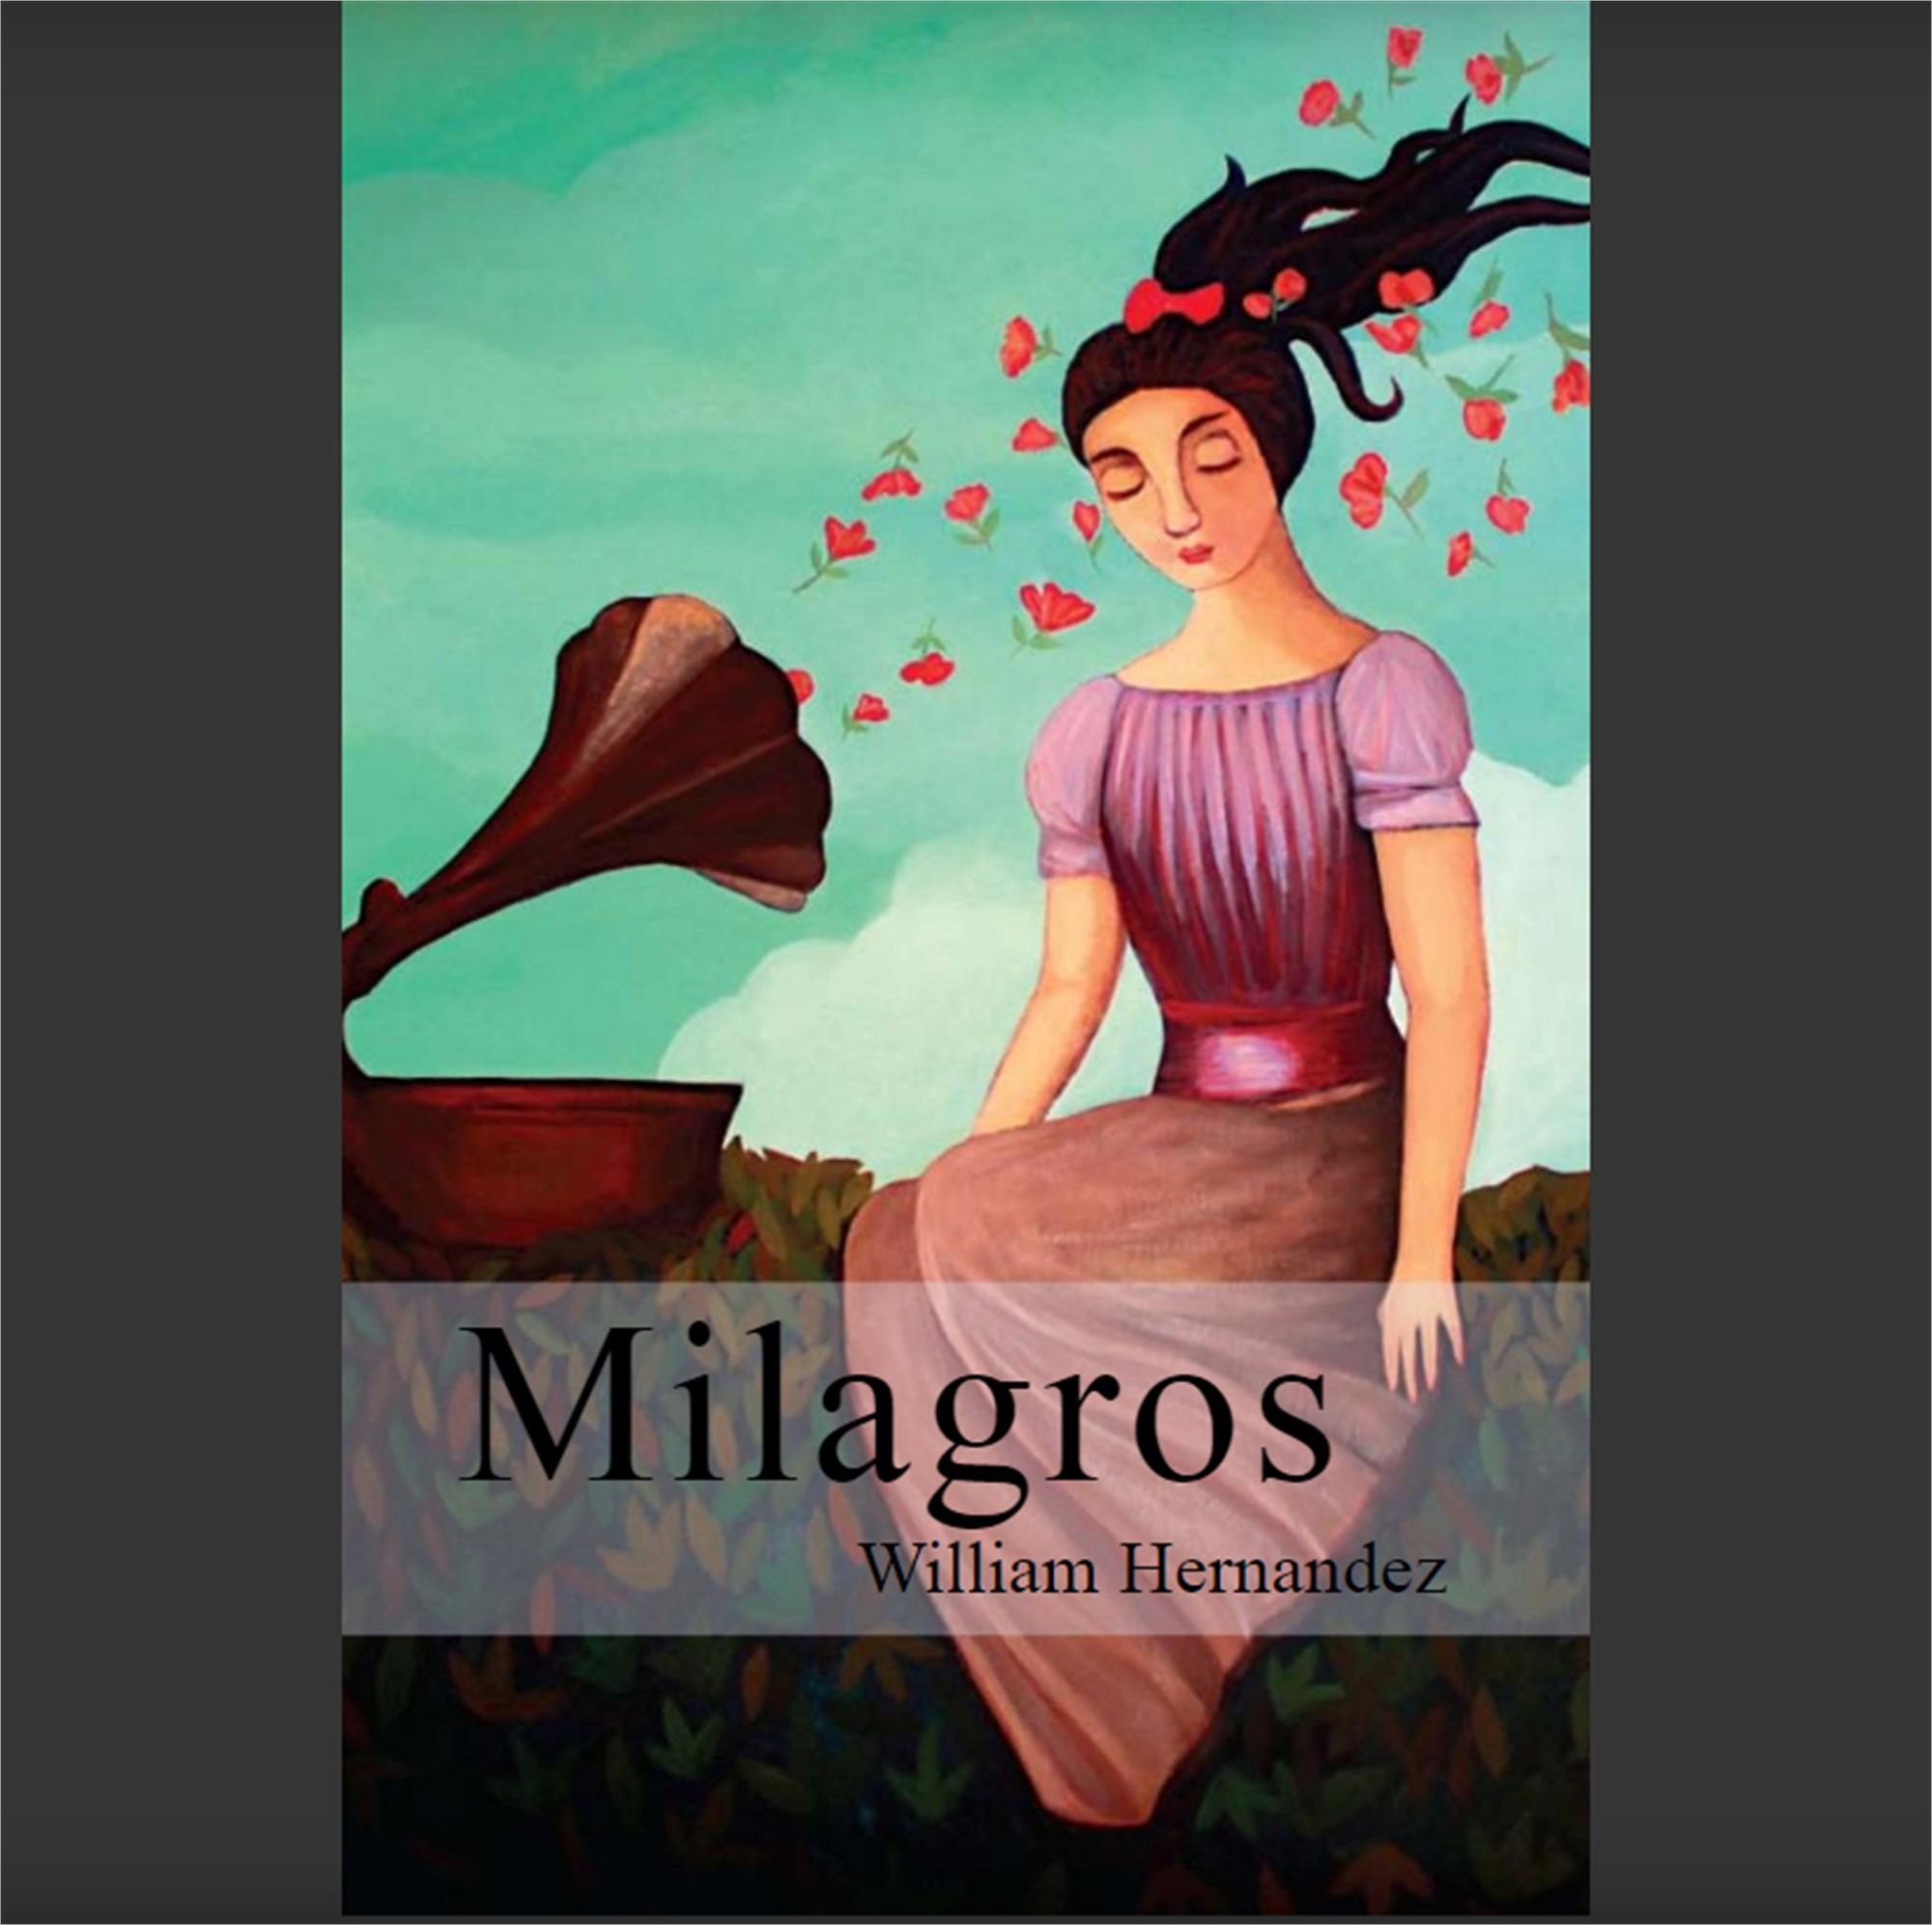 Milagros | exhibition brochure by William Hernandez